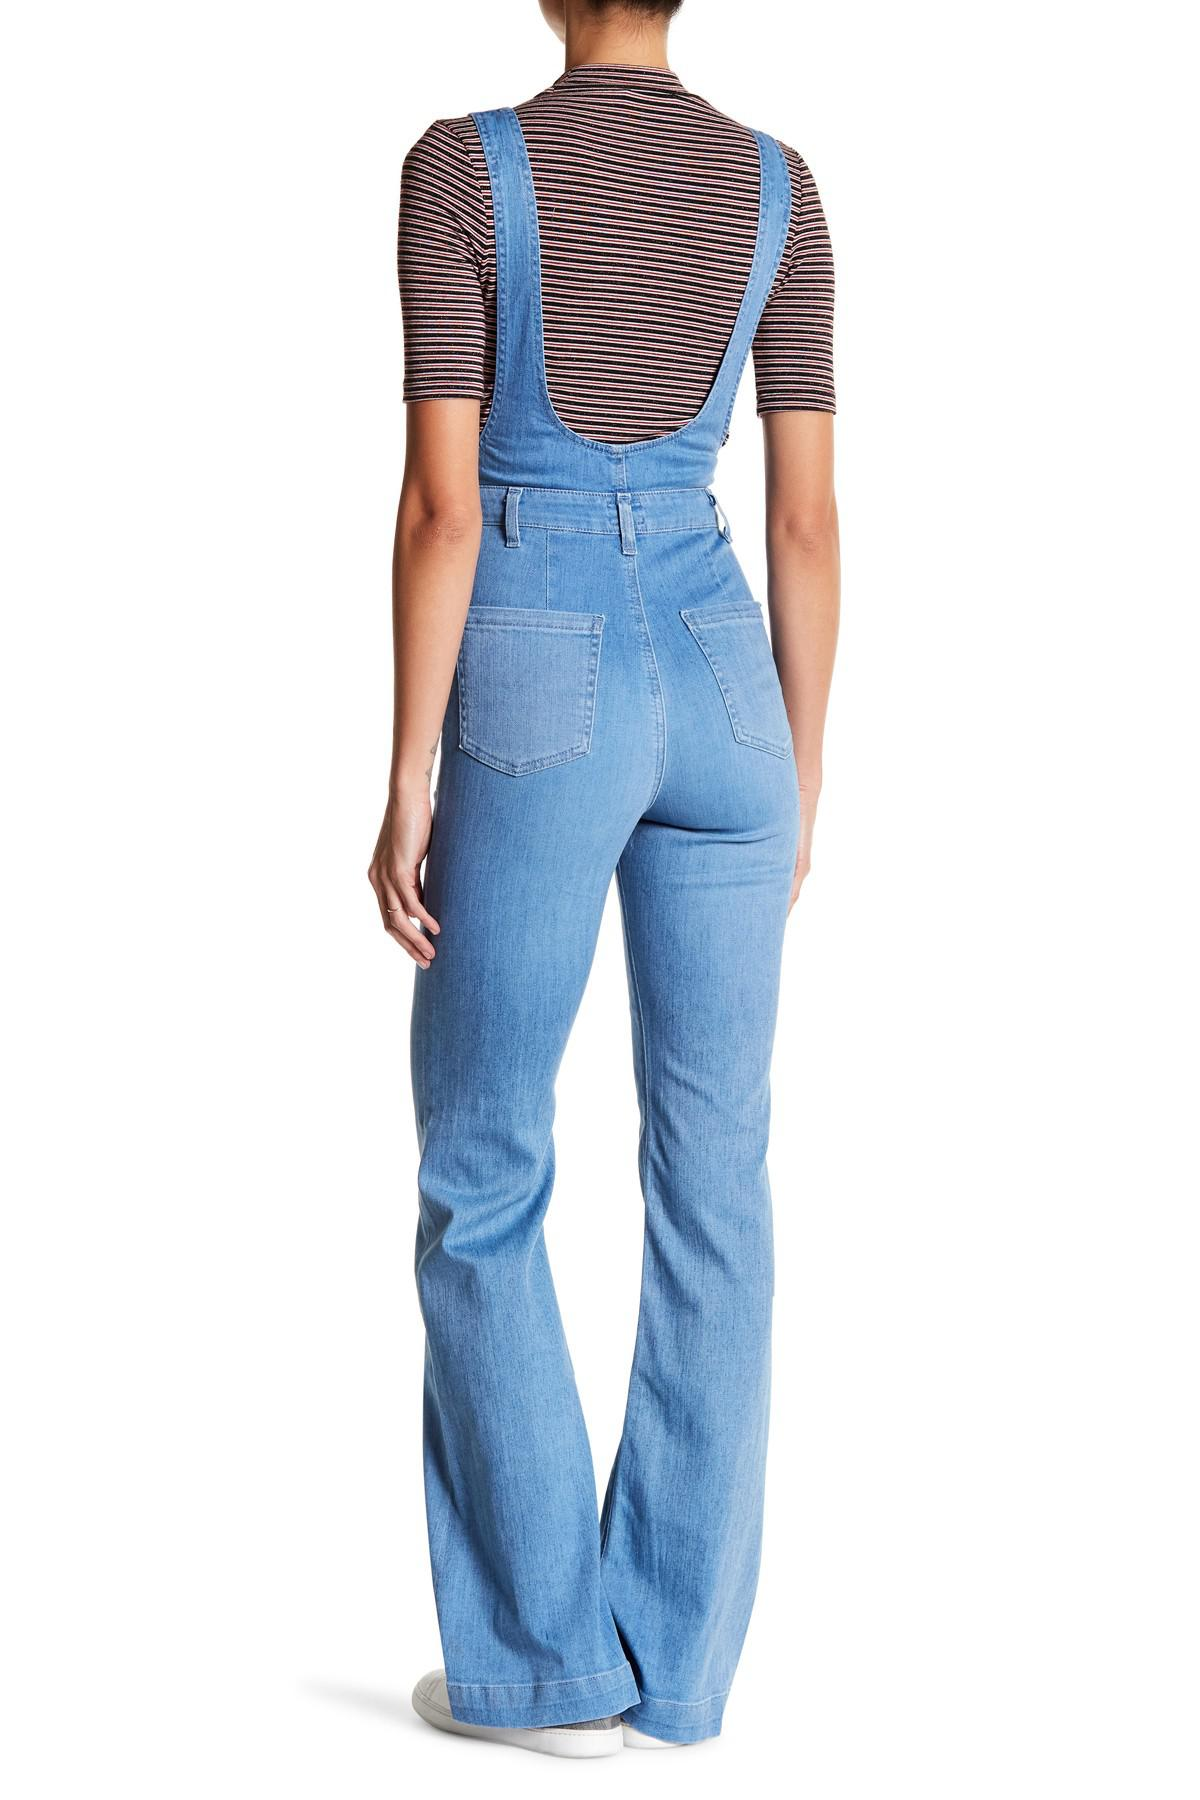 ec2e2f9870bc Lyst - AG Jeans Lolita Flare Overall in Blue